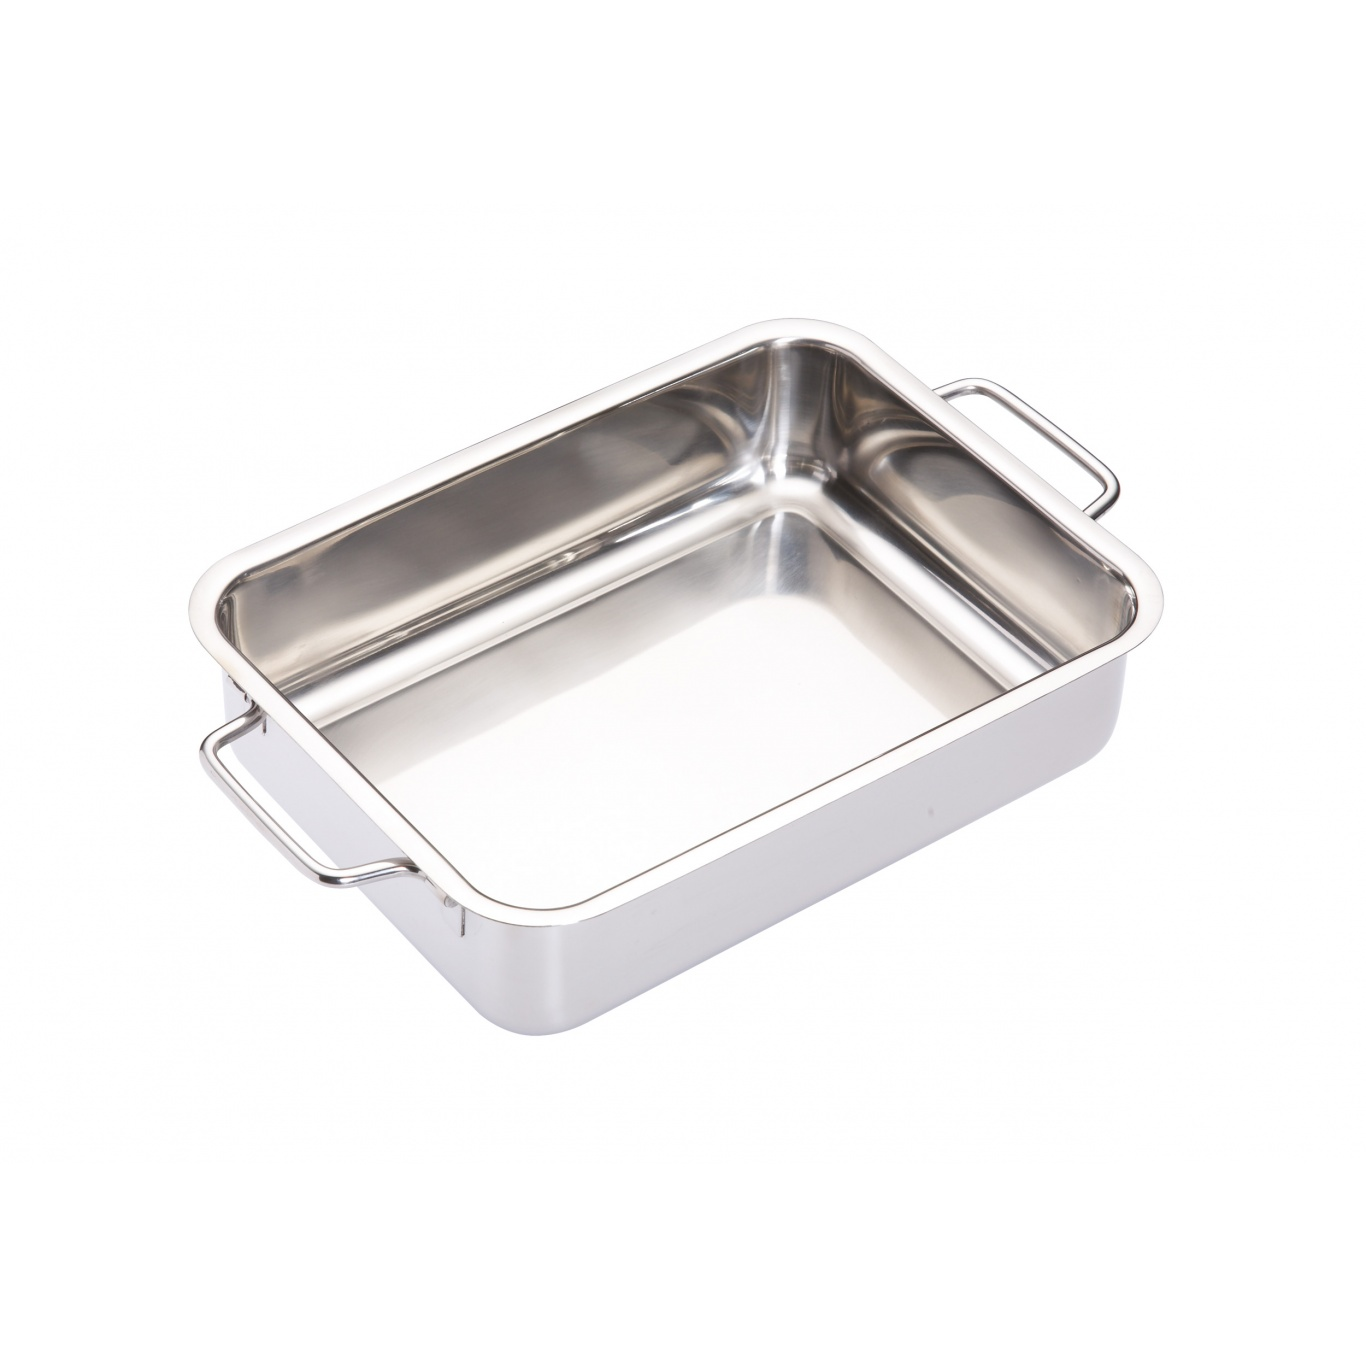 Image of Stainless Steel Heavy Duty Roasting Pan 27cm x 20cm x 6.5cm